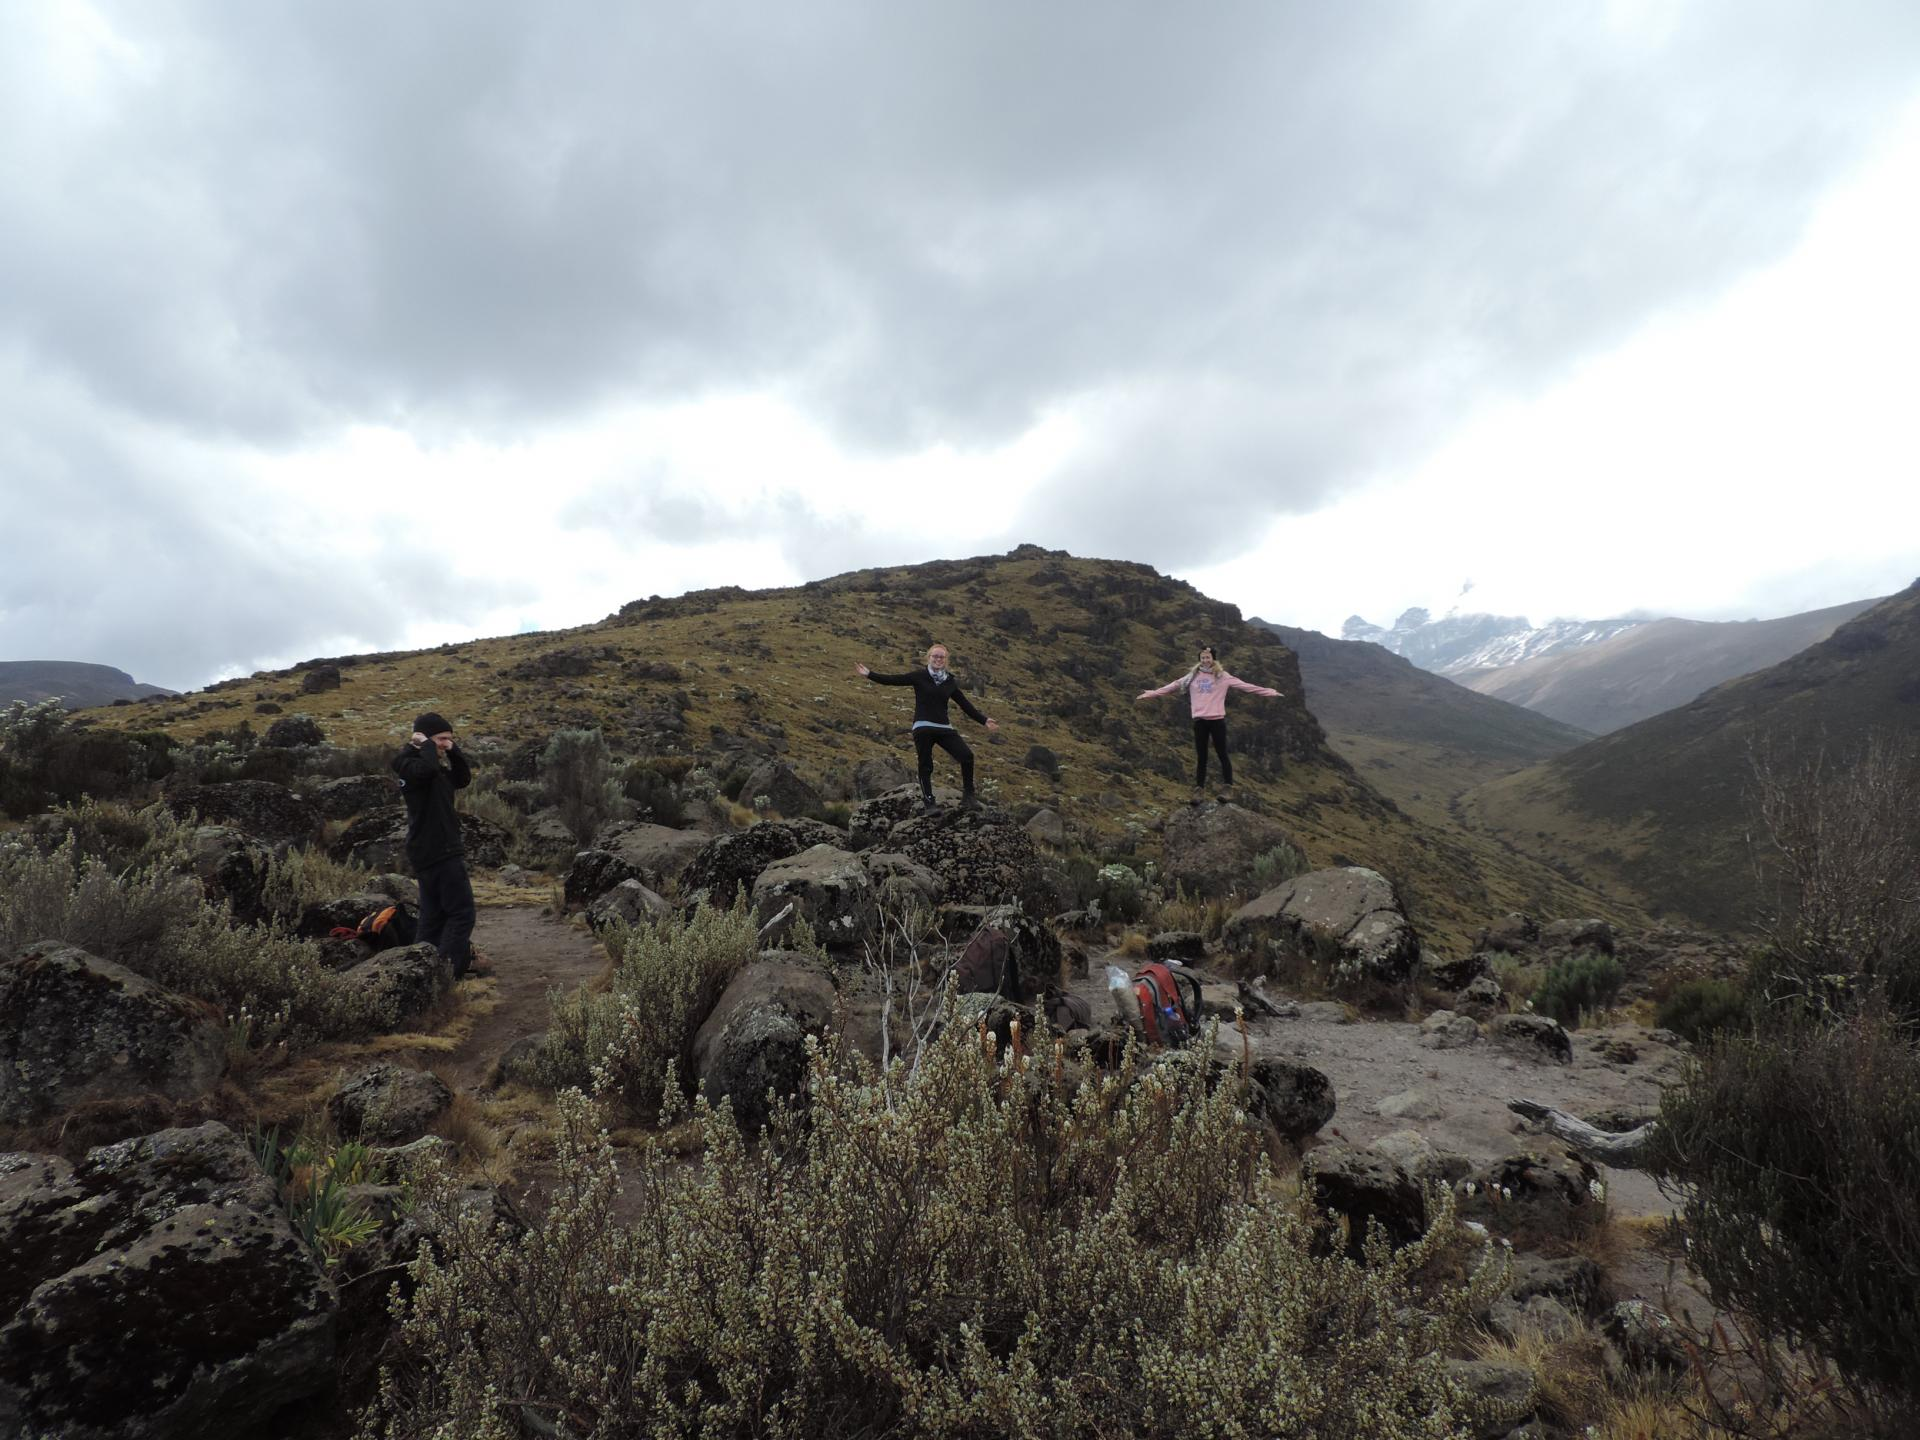 trekking trips Kenya, climbing mount Kenya, climbing Mount Kenya in Kenya, mount Kenya hiking, walking, route, trekking routes, yha Kenya travel, photos